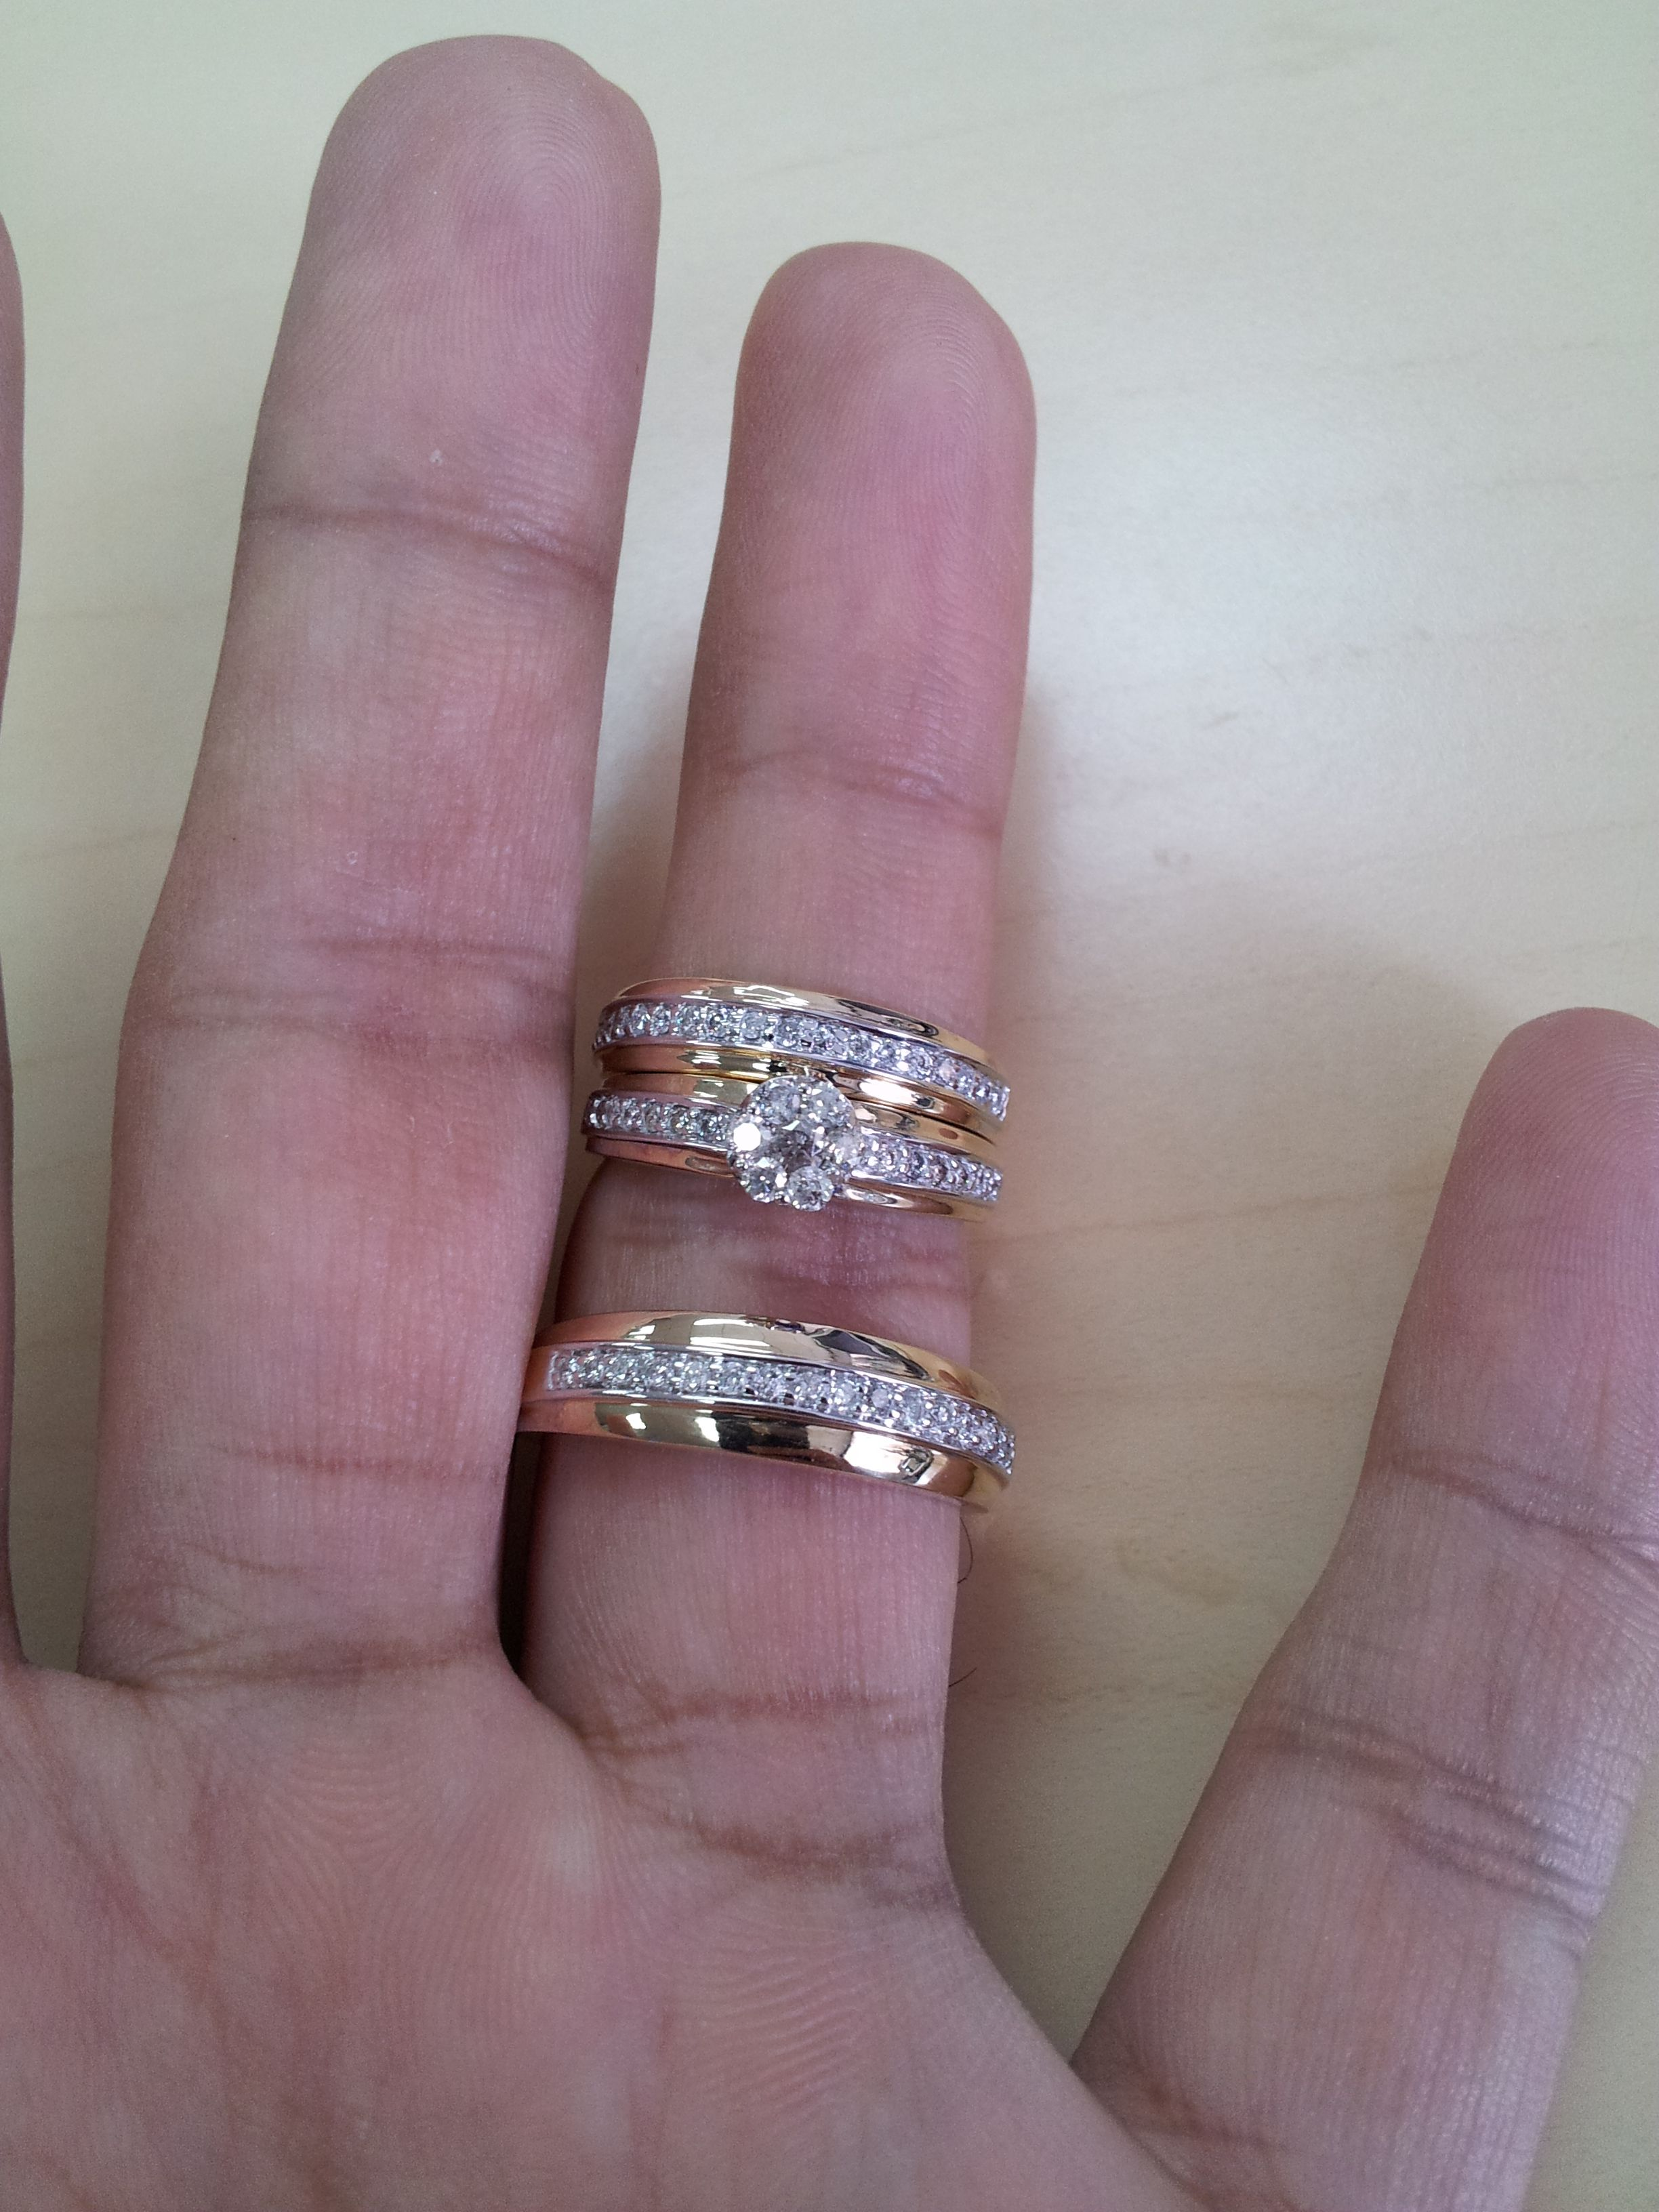 Rings On Hand Trio Ring Set Bt114y Engagement Ring Ladies Wedding Band Mens Wed Matching Wedding Ring Sets Matching Wedding Rings Engagement Rings Couple